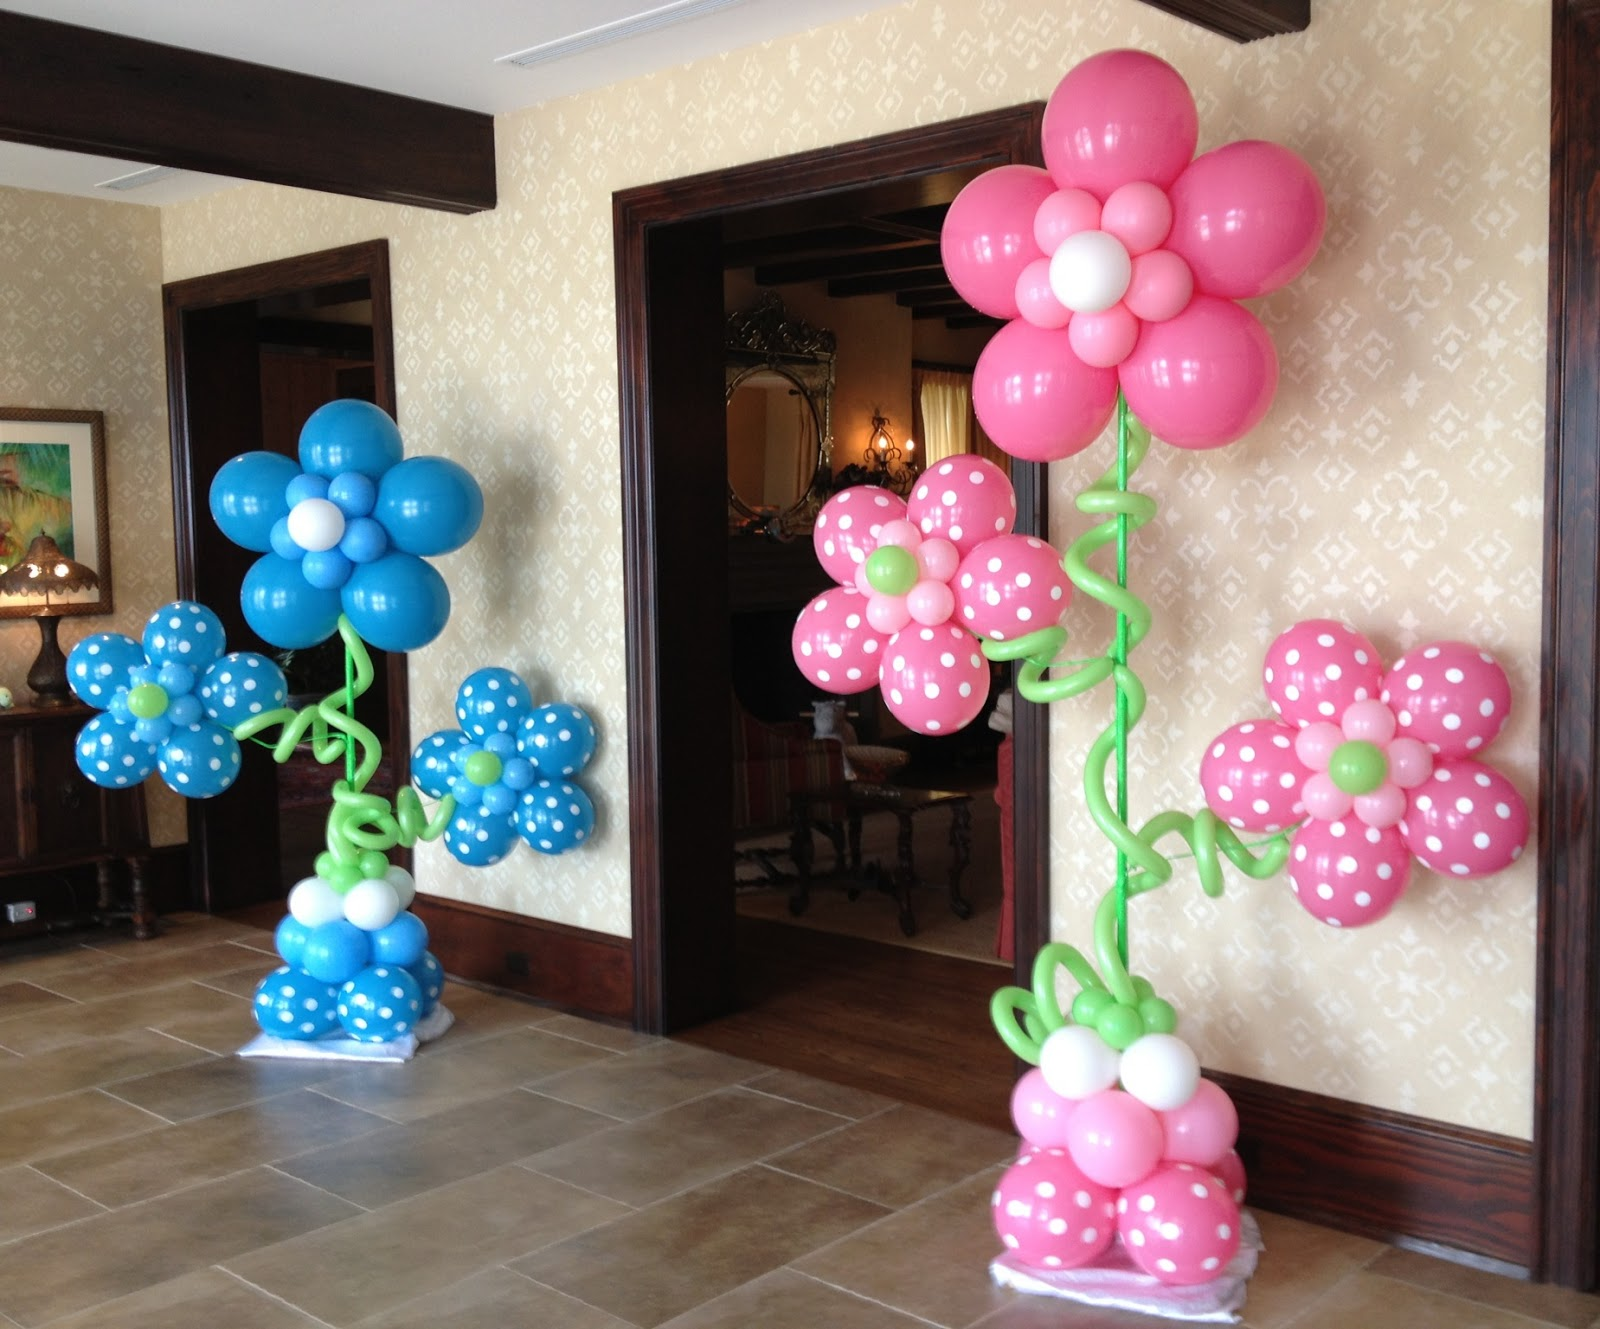 Party people event decorating company june 2013 for Balloon decoration companies